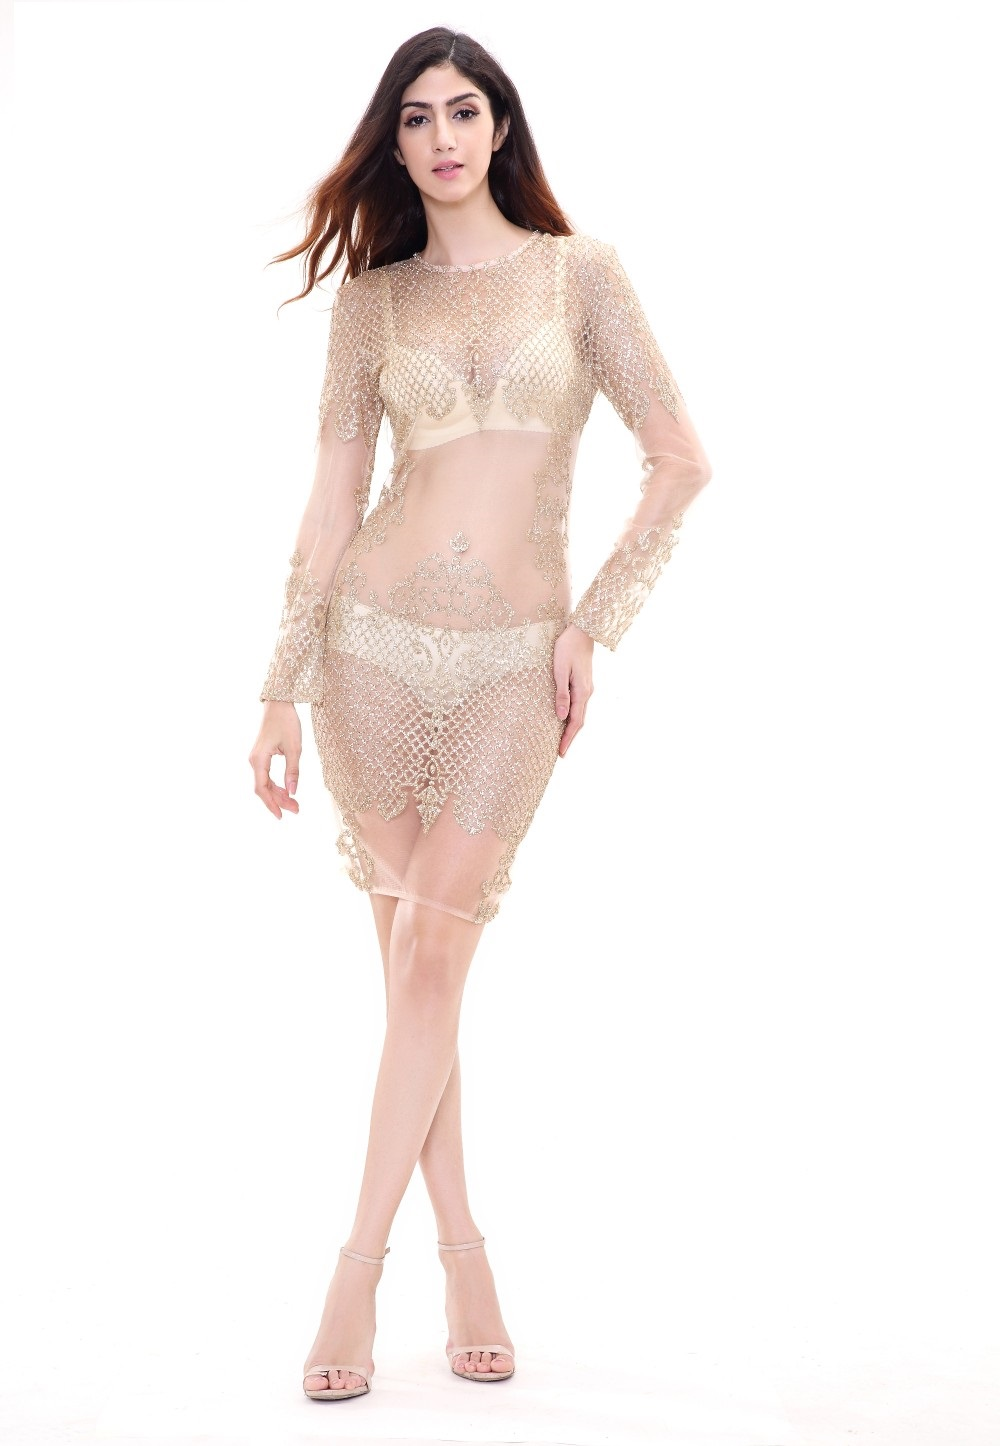 See thru clothing pictures-2152